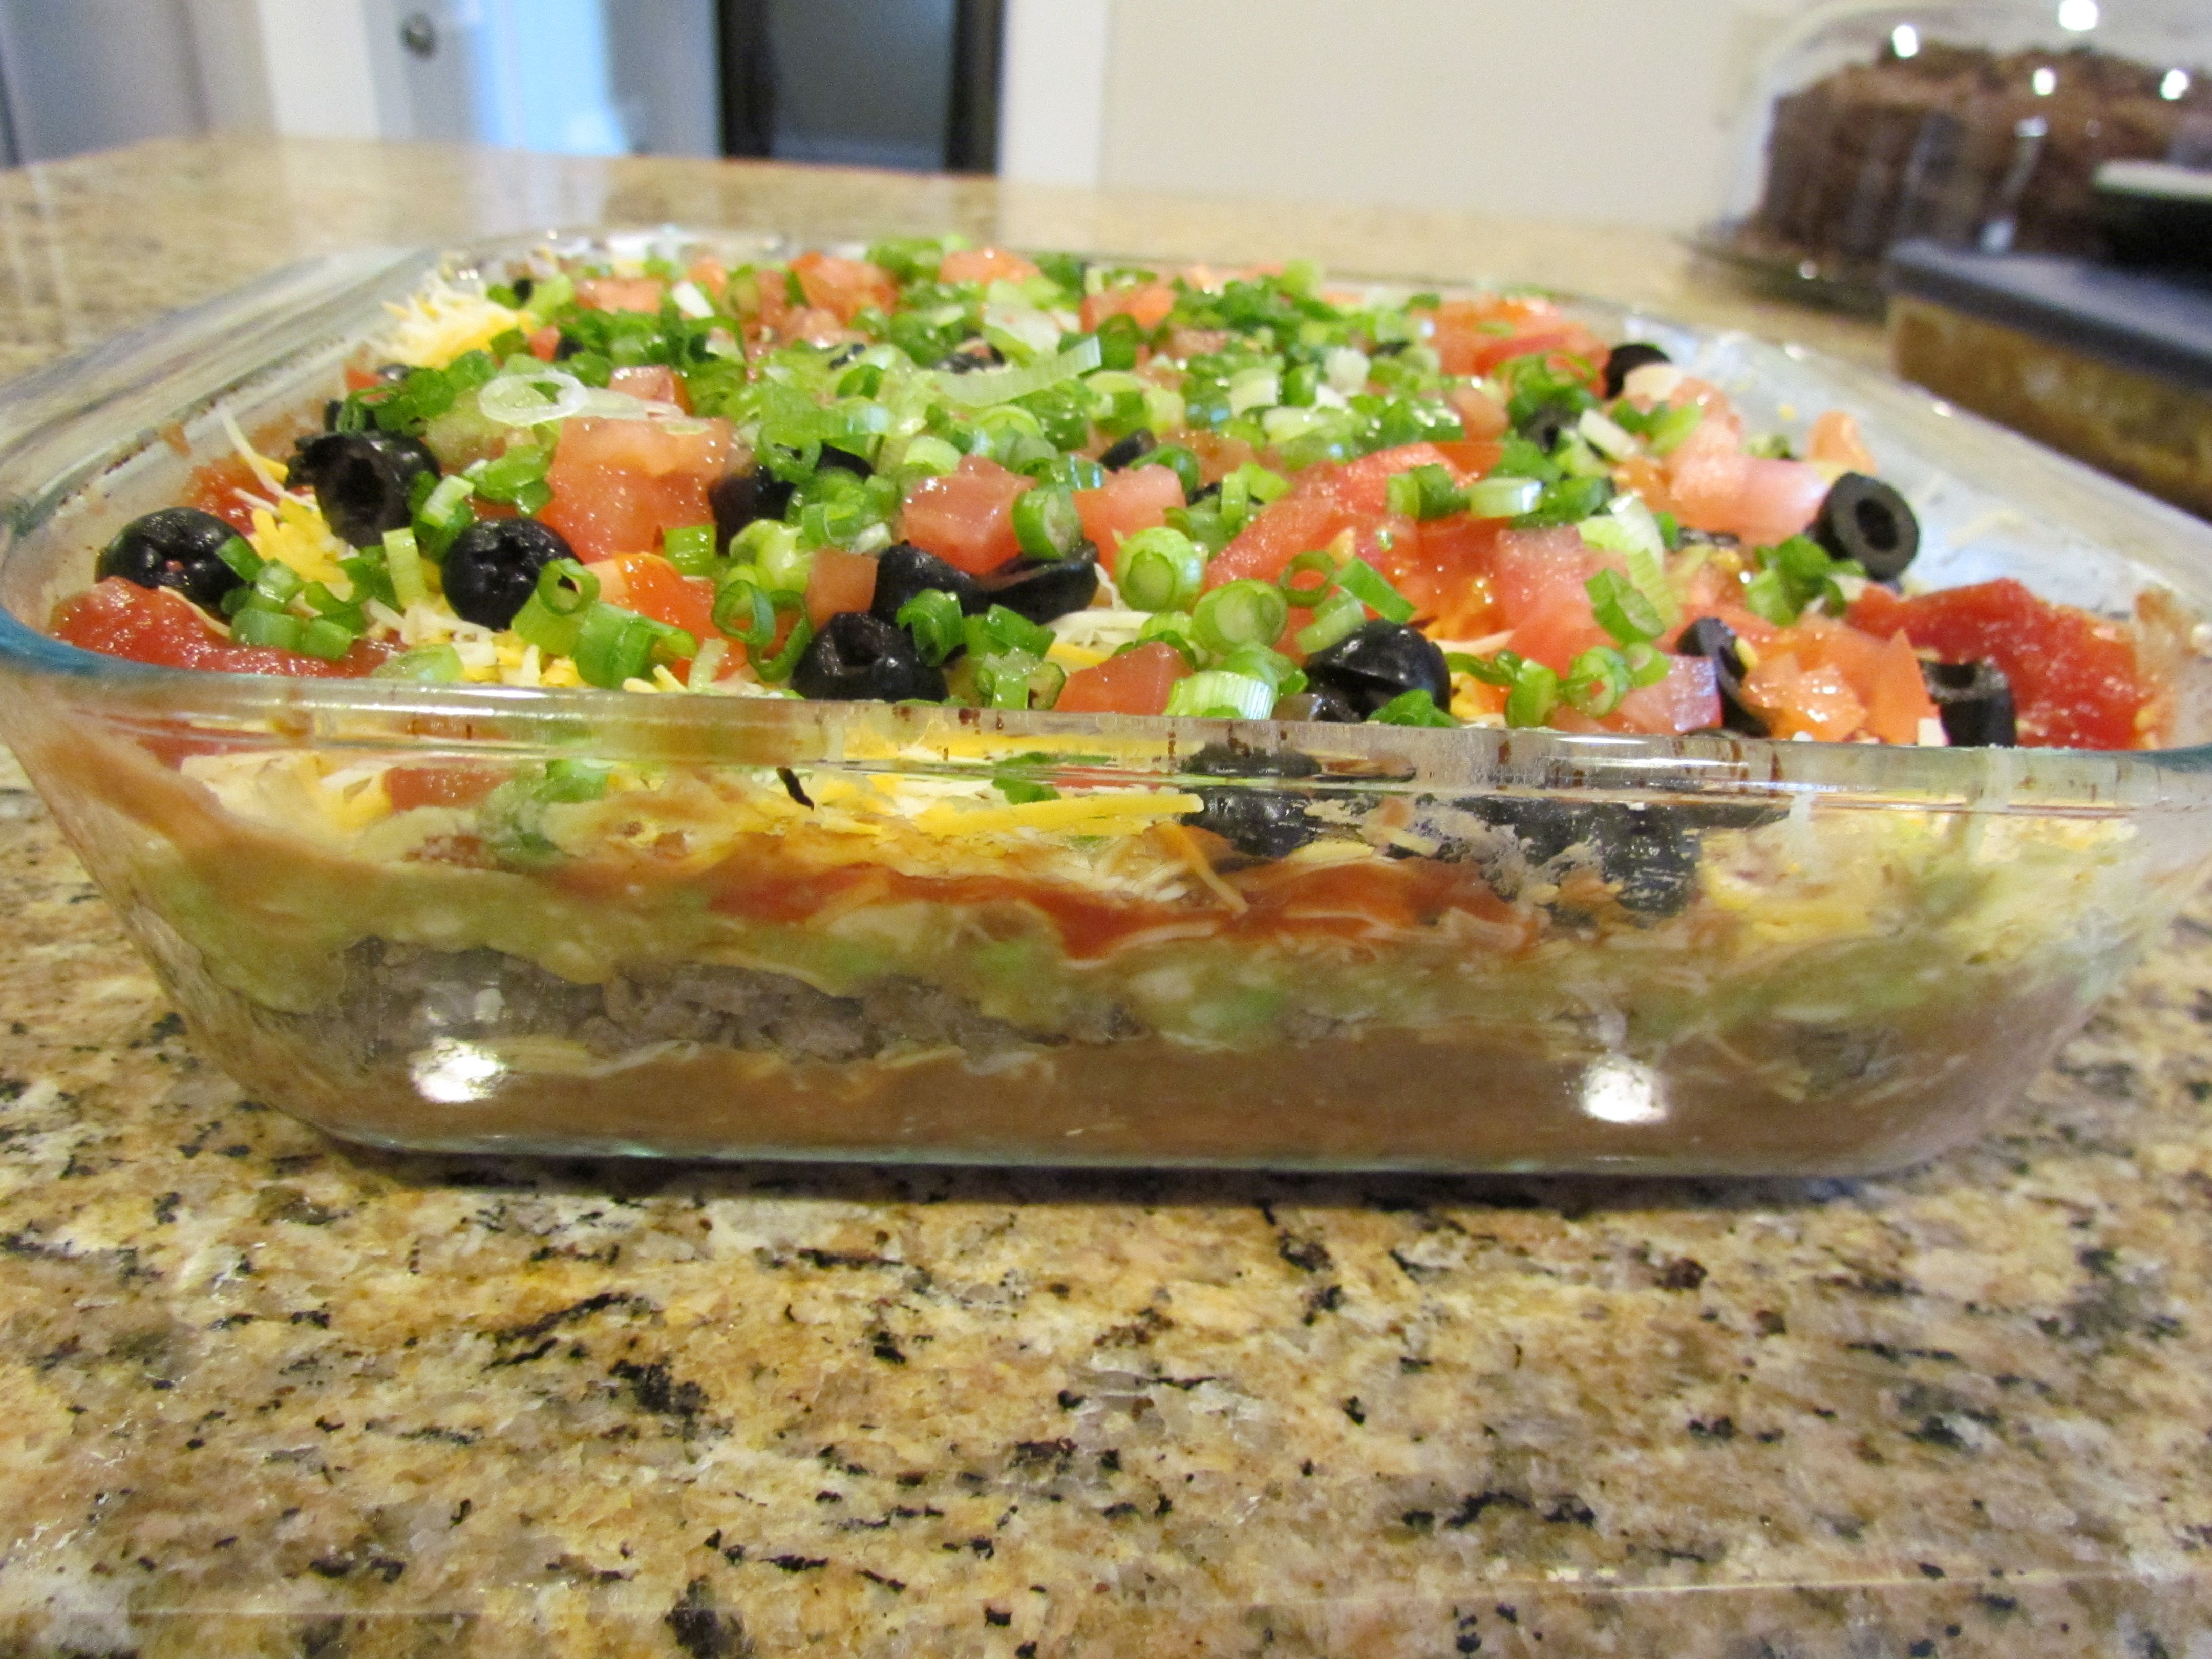 7 Layer Nacho Dip With Cumin Infused Ground Beef Refried Beans Guacamole Sour Cream Salsa Monterey Jack Ched Layered Nacho Dip Superbowl Party Food Food